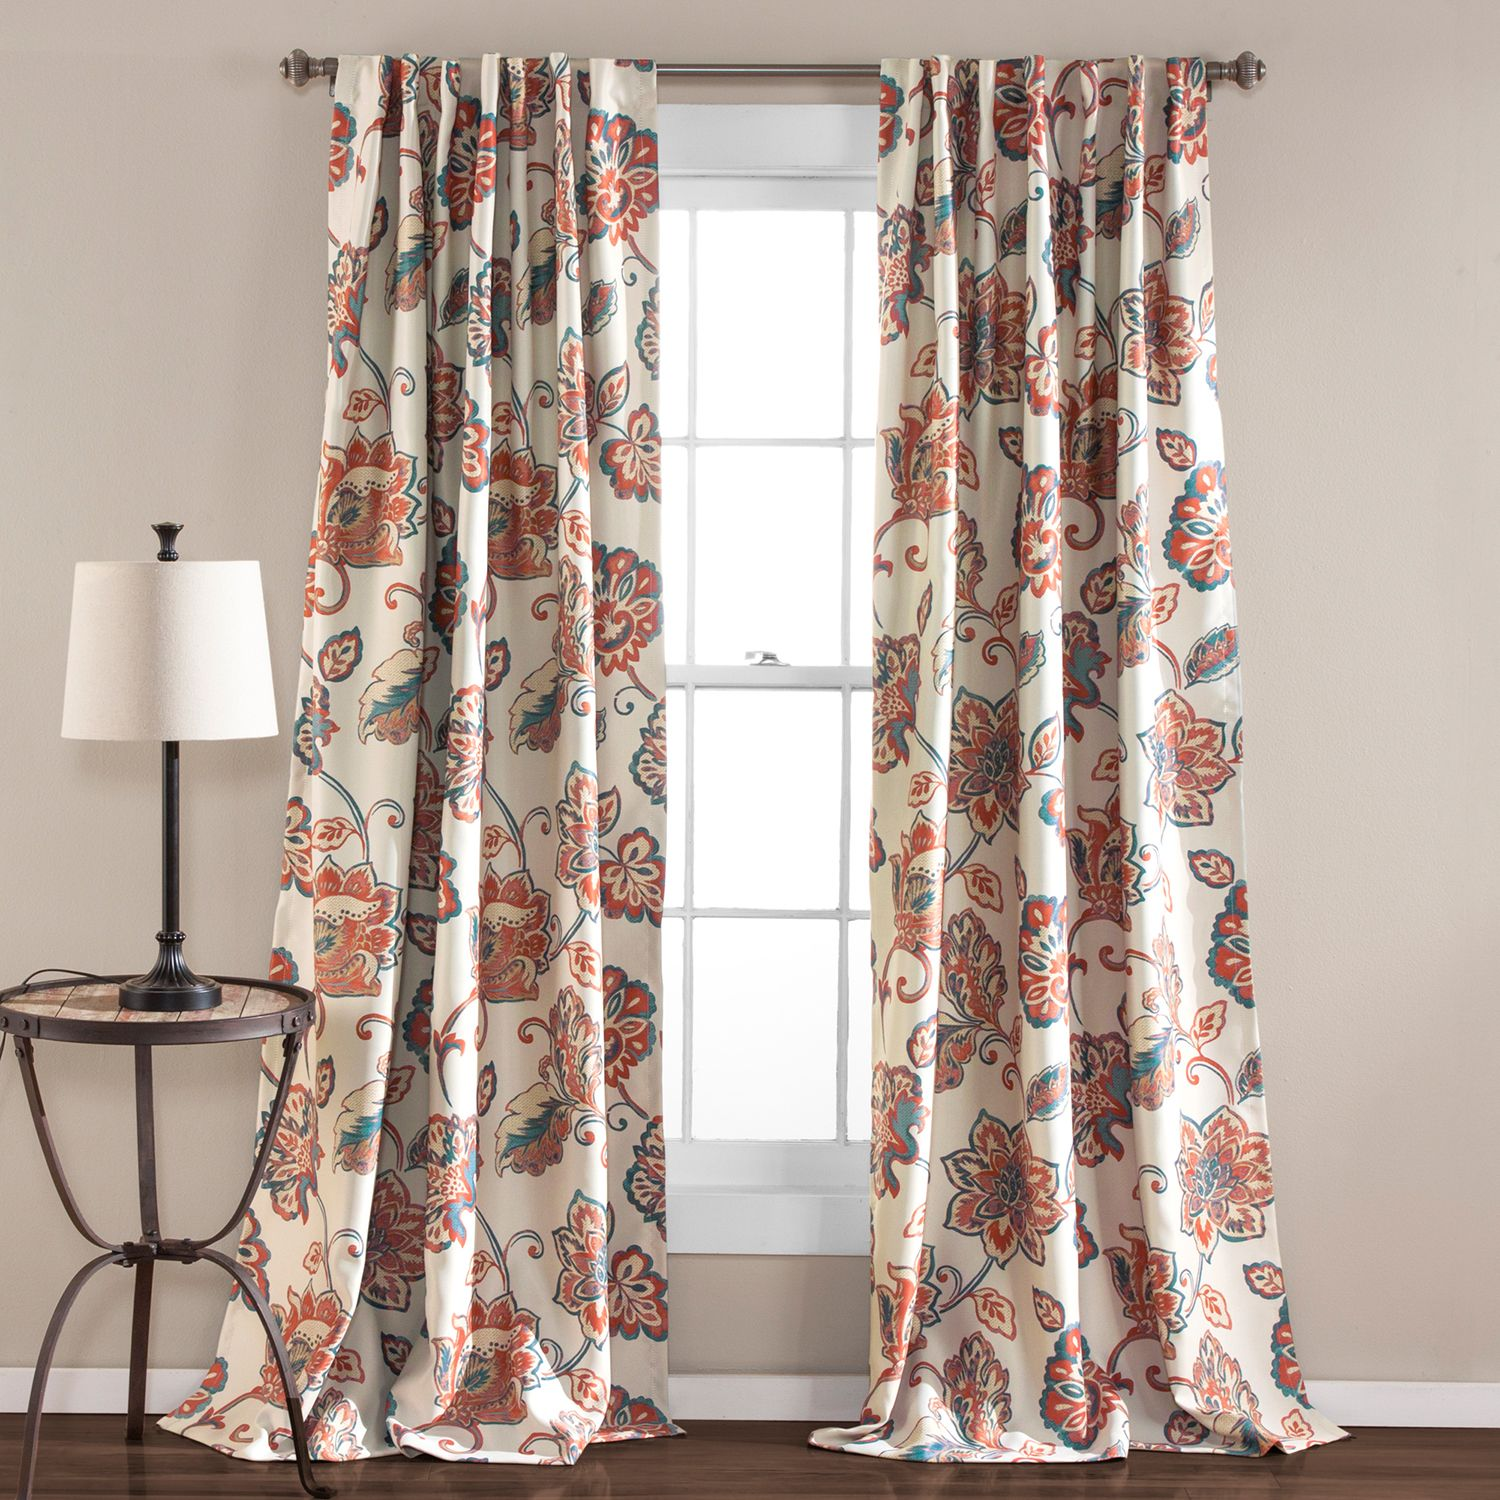 Kohls bedroom curtains cool living room paints shower curtains kohls and living room sets - Kohls kitchen curtains ...